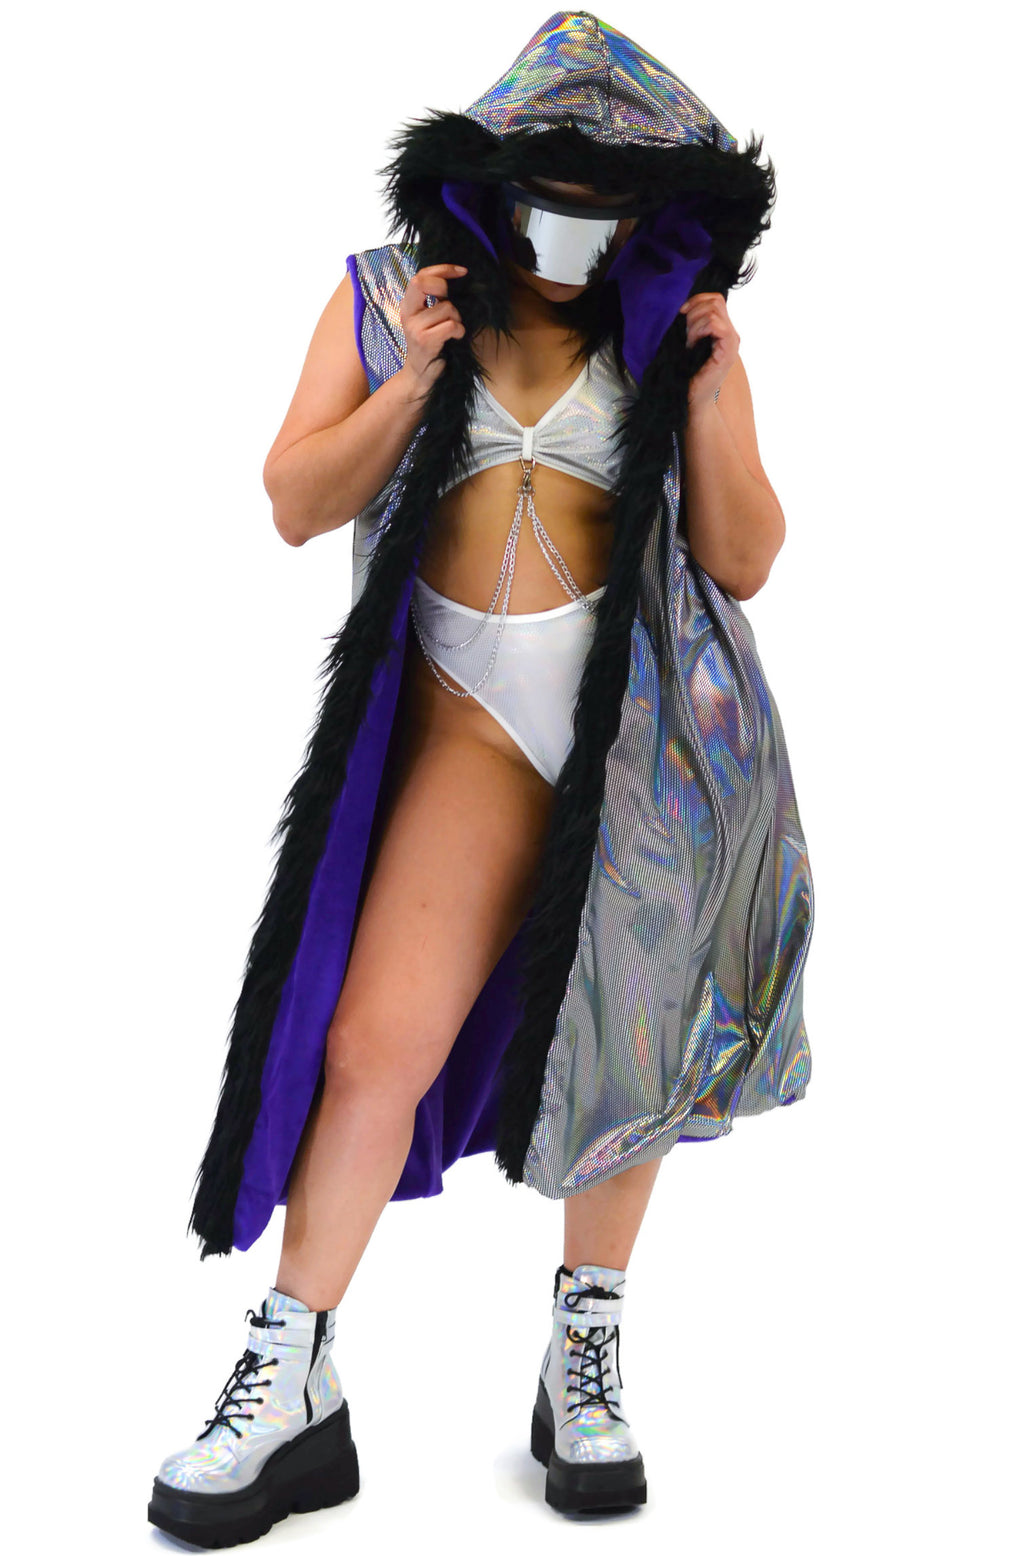 Reversible Cyber Duster - Cyber Black & Purple - Rolita Couture